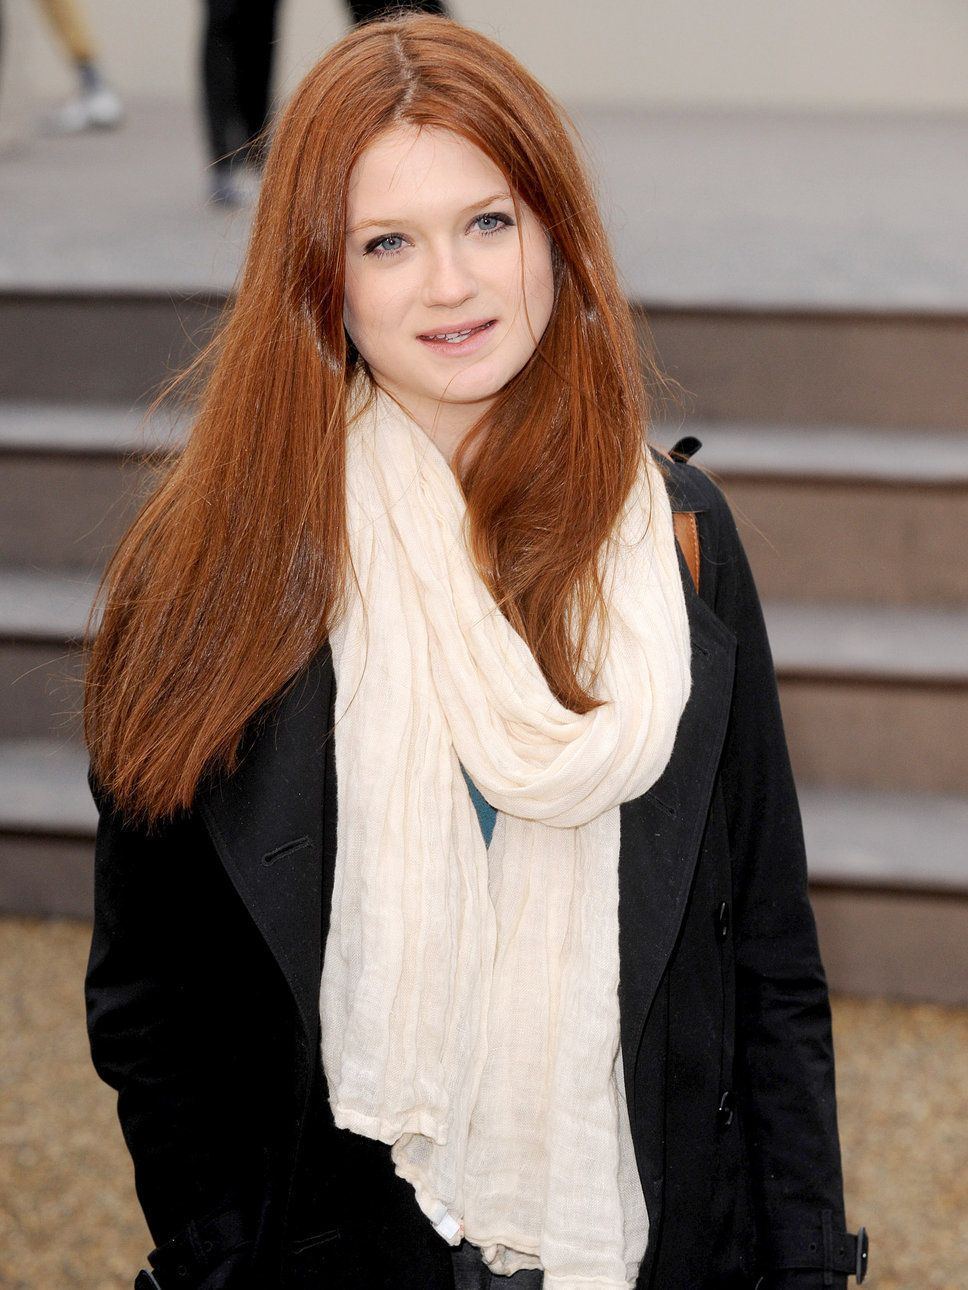 Discussion on this topic: Lisa Varga, bonnie-wright-born-1991/